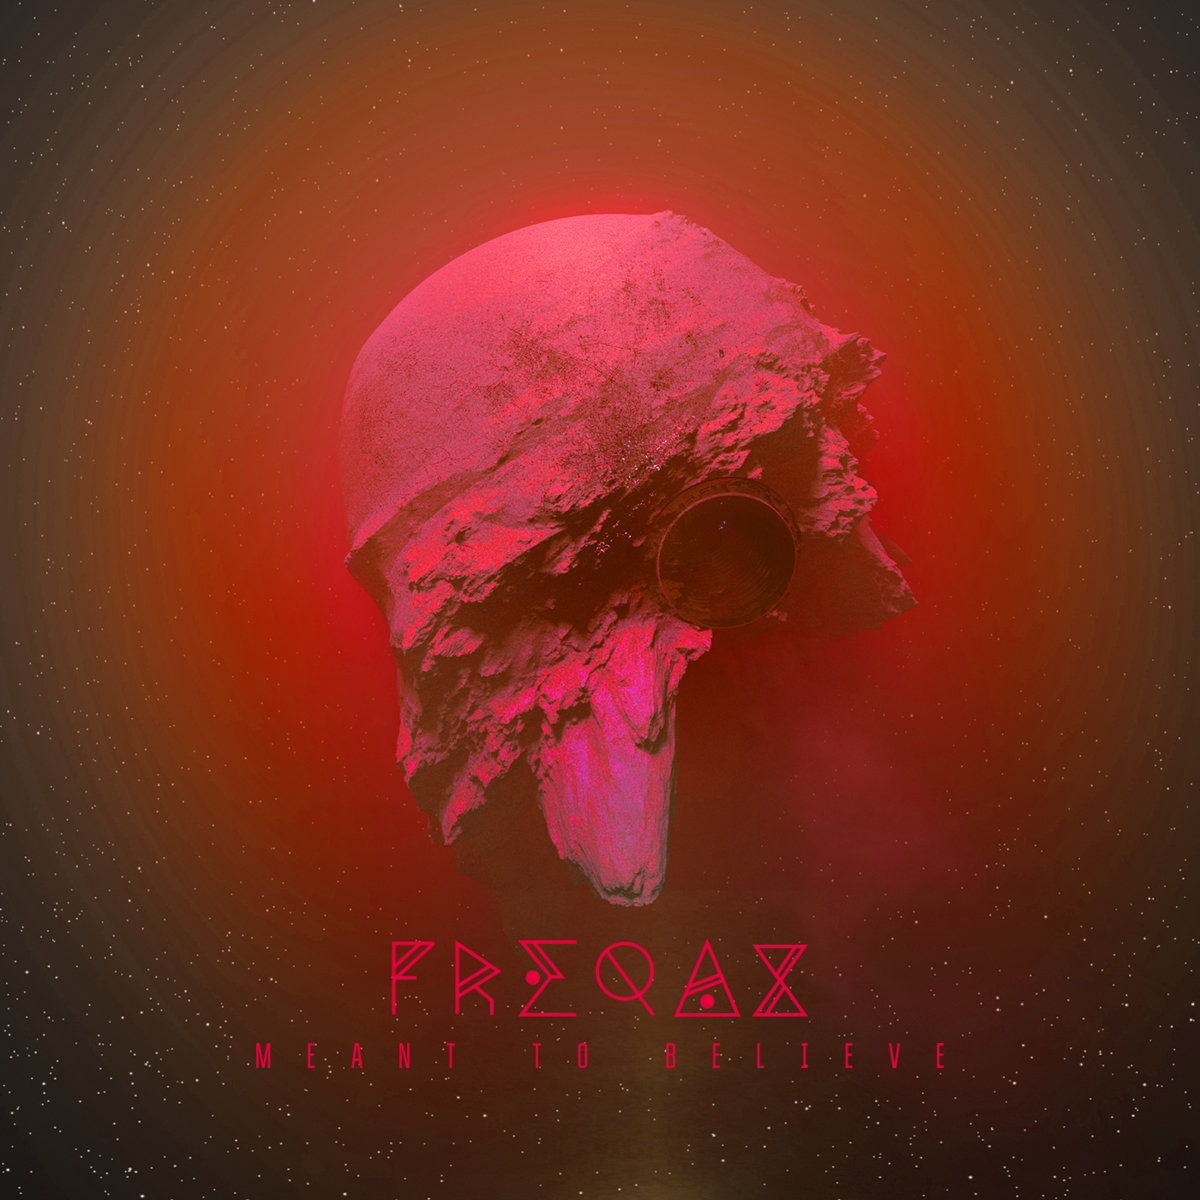 Freqax - Meant To Believe